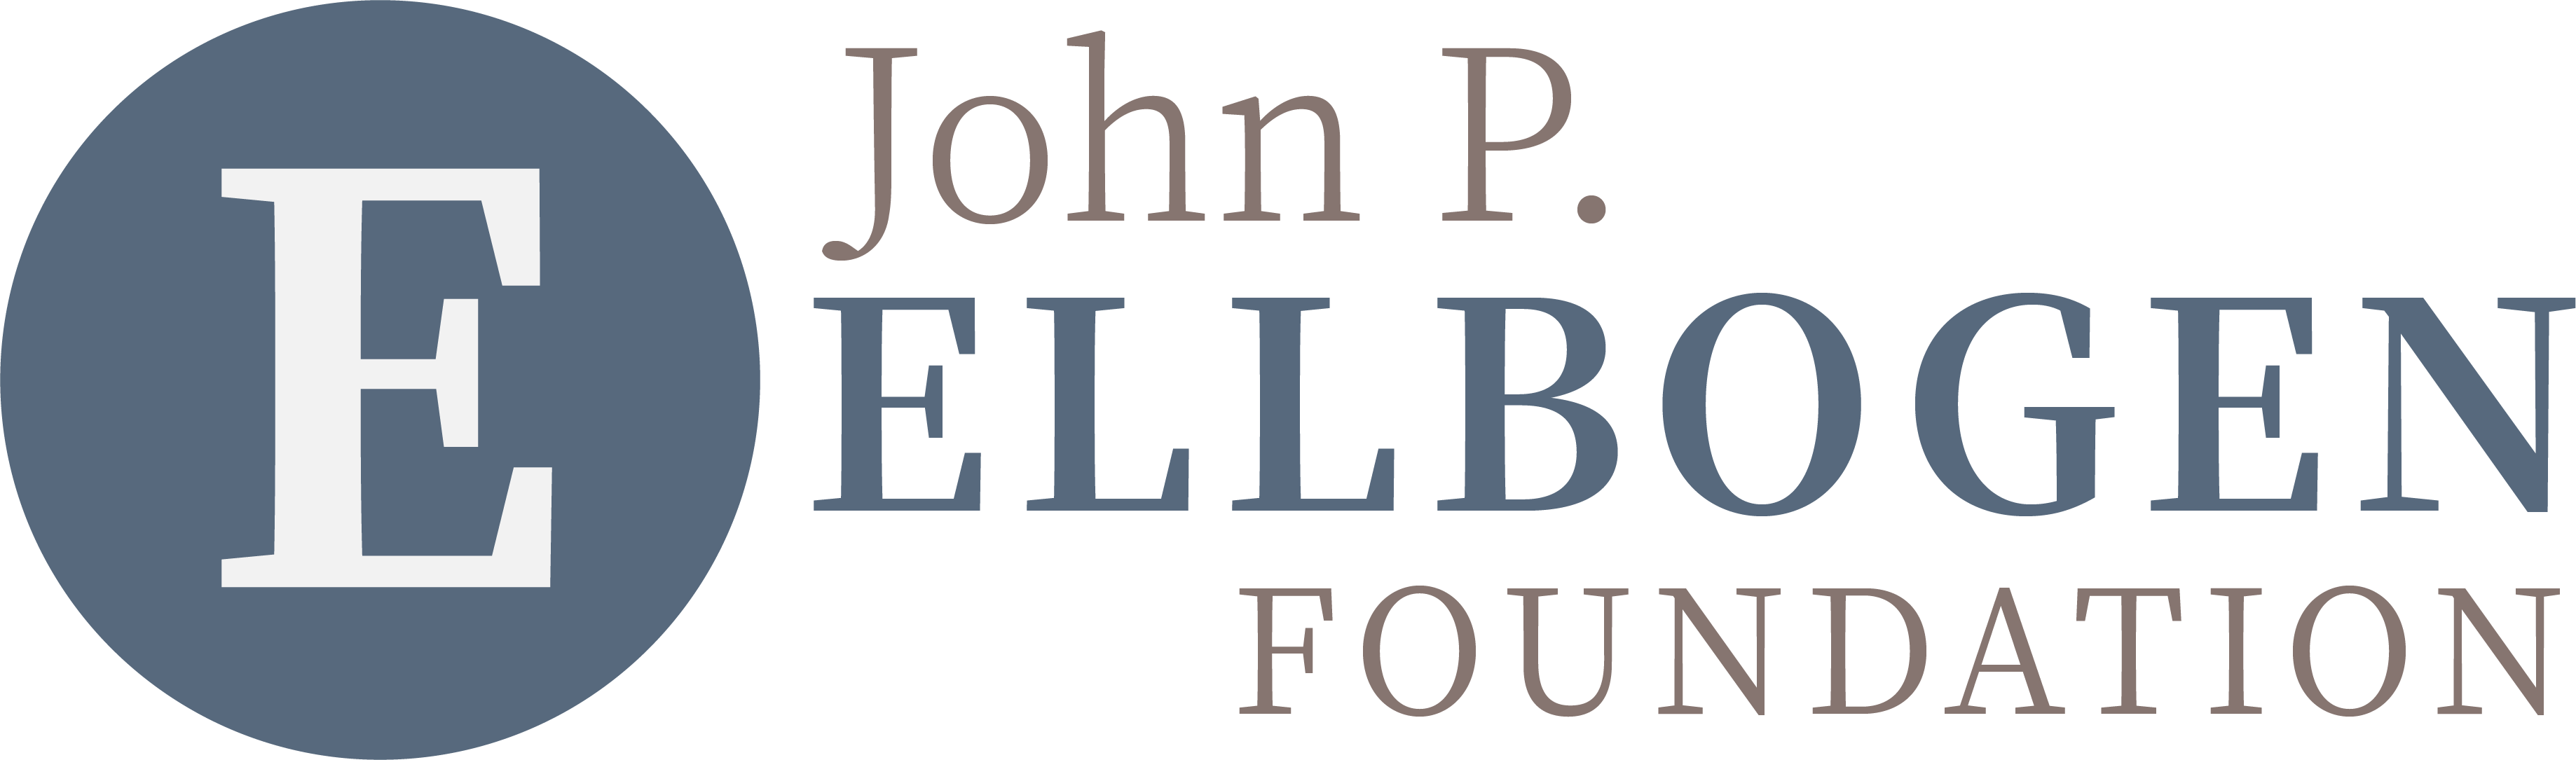 John P. Ellbogen Foundation